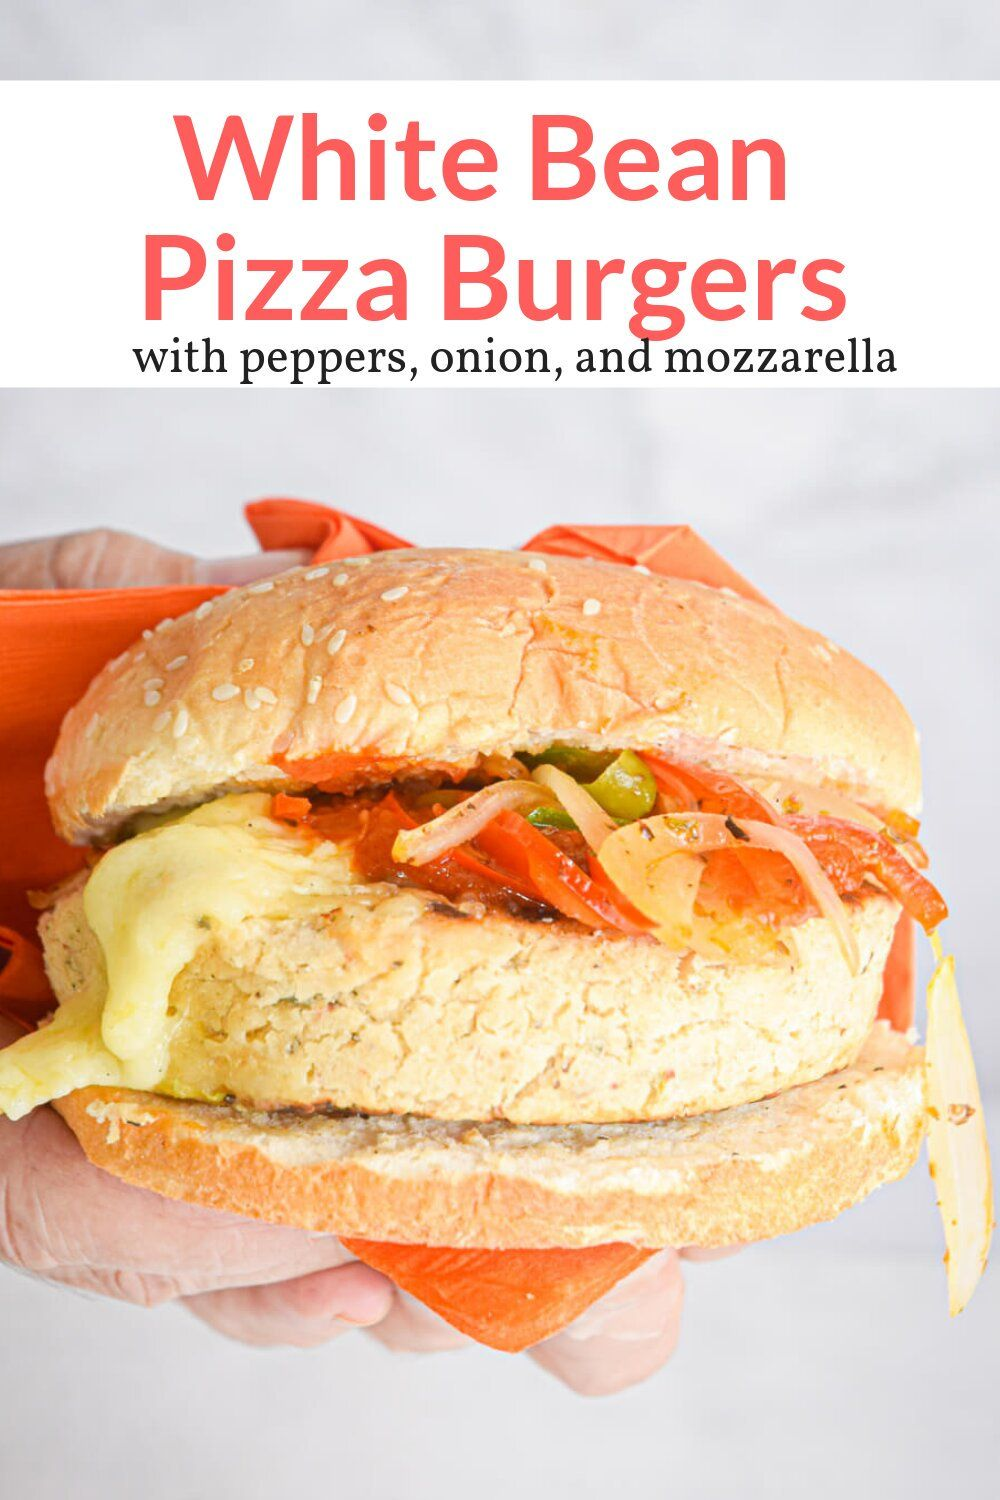 White Bean Pizza Burgers The most delicious vegetarian burgers made with white beans and then topped with sauteed peppers, onions, marinara sauce, and melted mozzarella cheese.